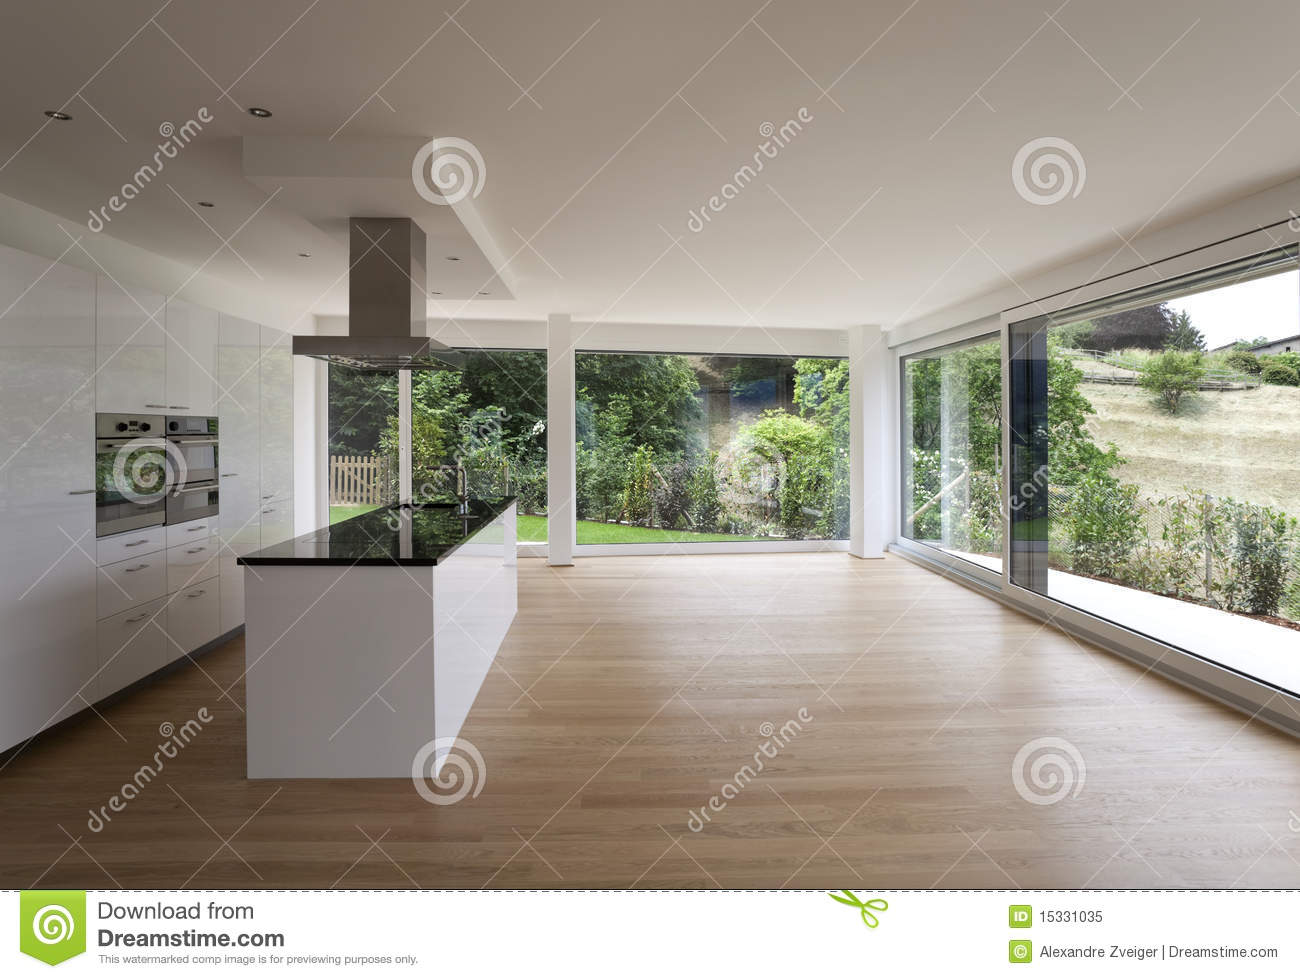 Bel int rieur d 39 une maison moderne image stock image 15331035 for Photo maison moderne interieur